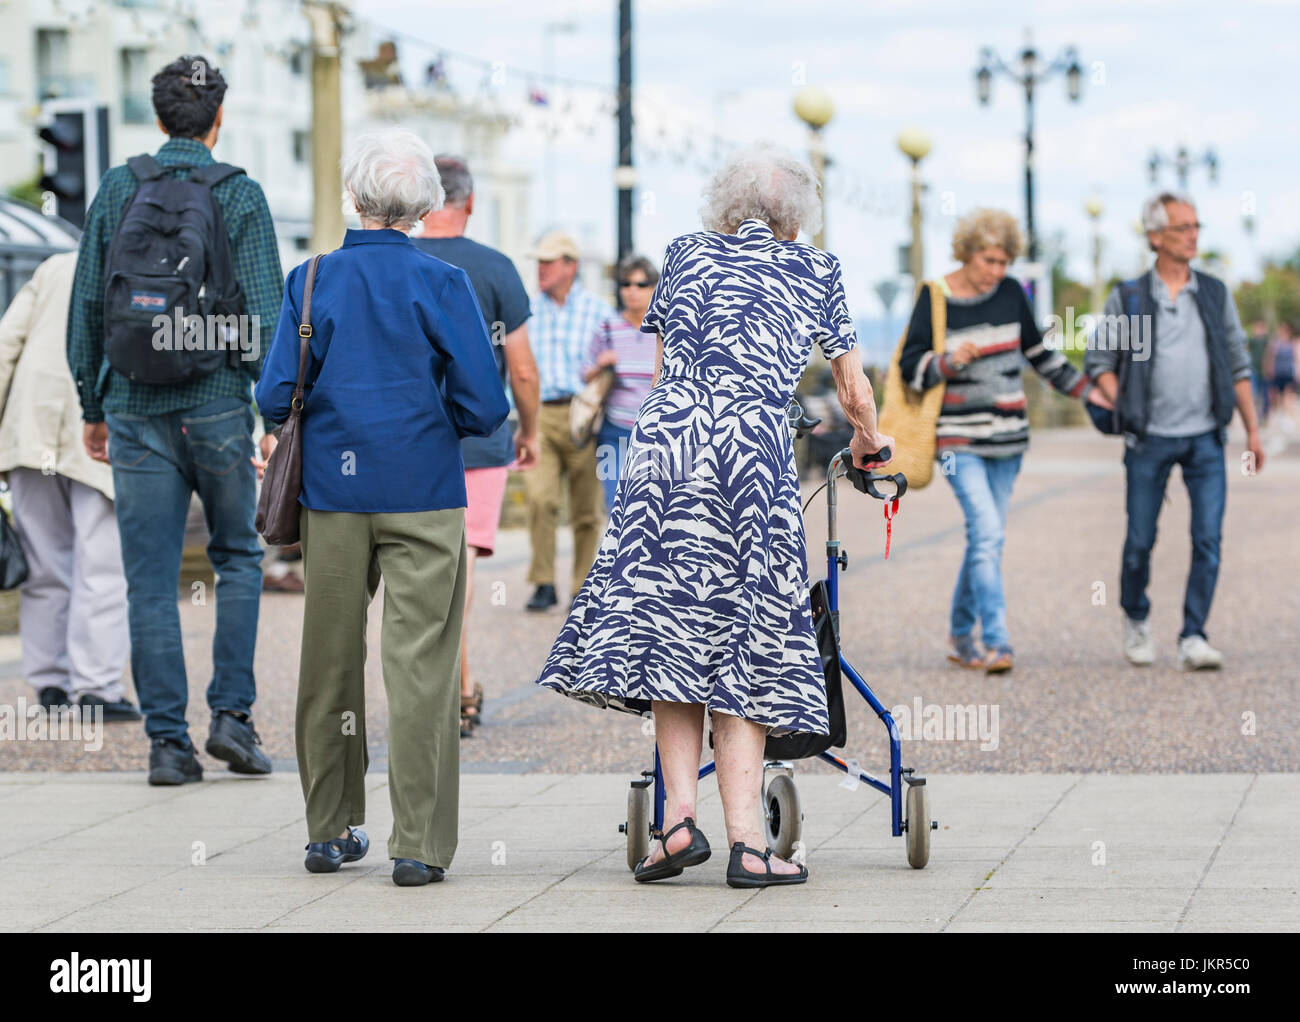 Rollator walking aid. Elderly woman walking with a wheeled walking frame or wheeled Zimmer frame in England, UK. - Stock Image